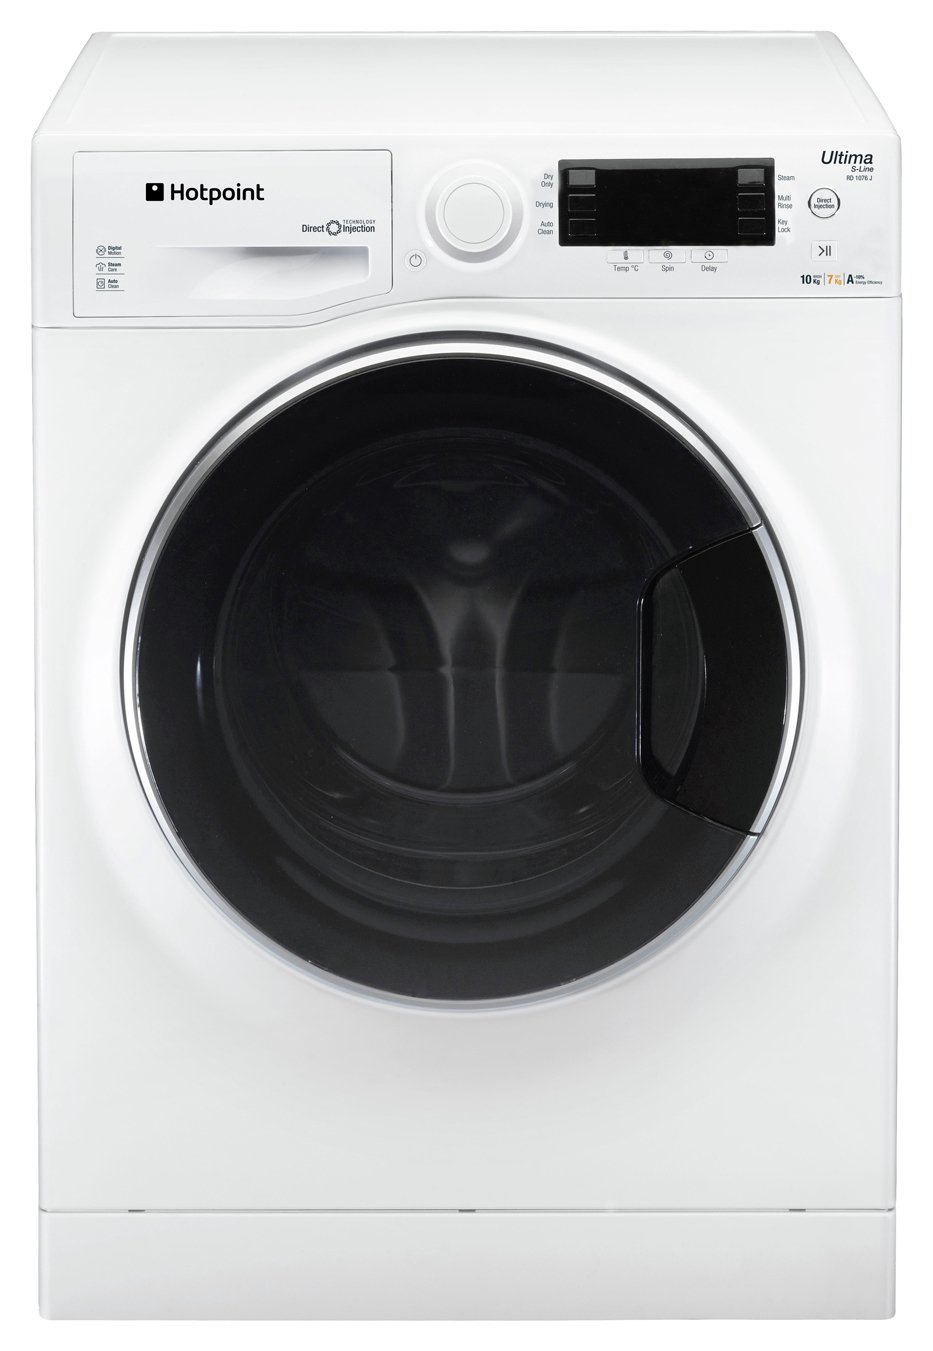 Hotpoint RD966JDUK Washer Dryer - White - Del/Ins/Rec from Hotpoint